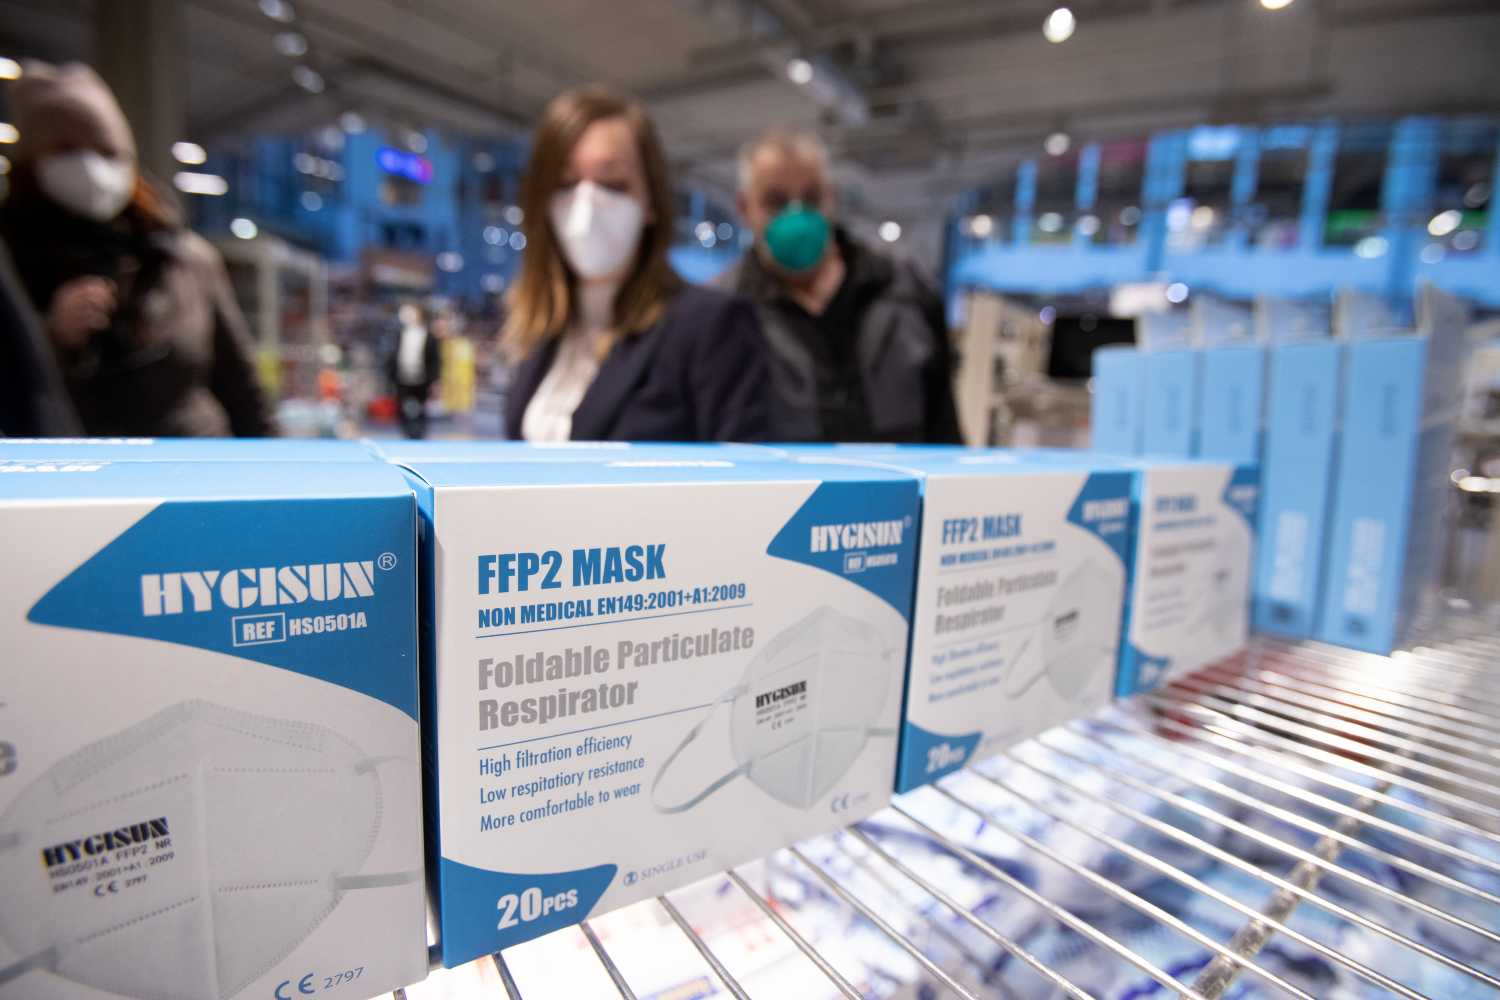 Austria to hike fines for not wearing face masks